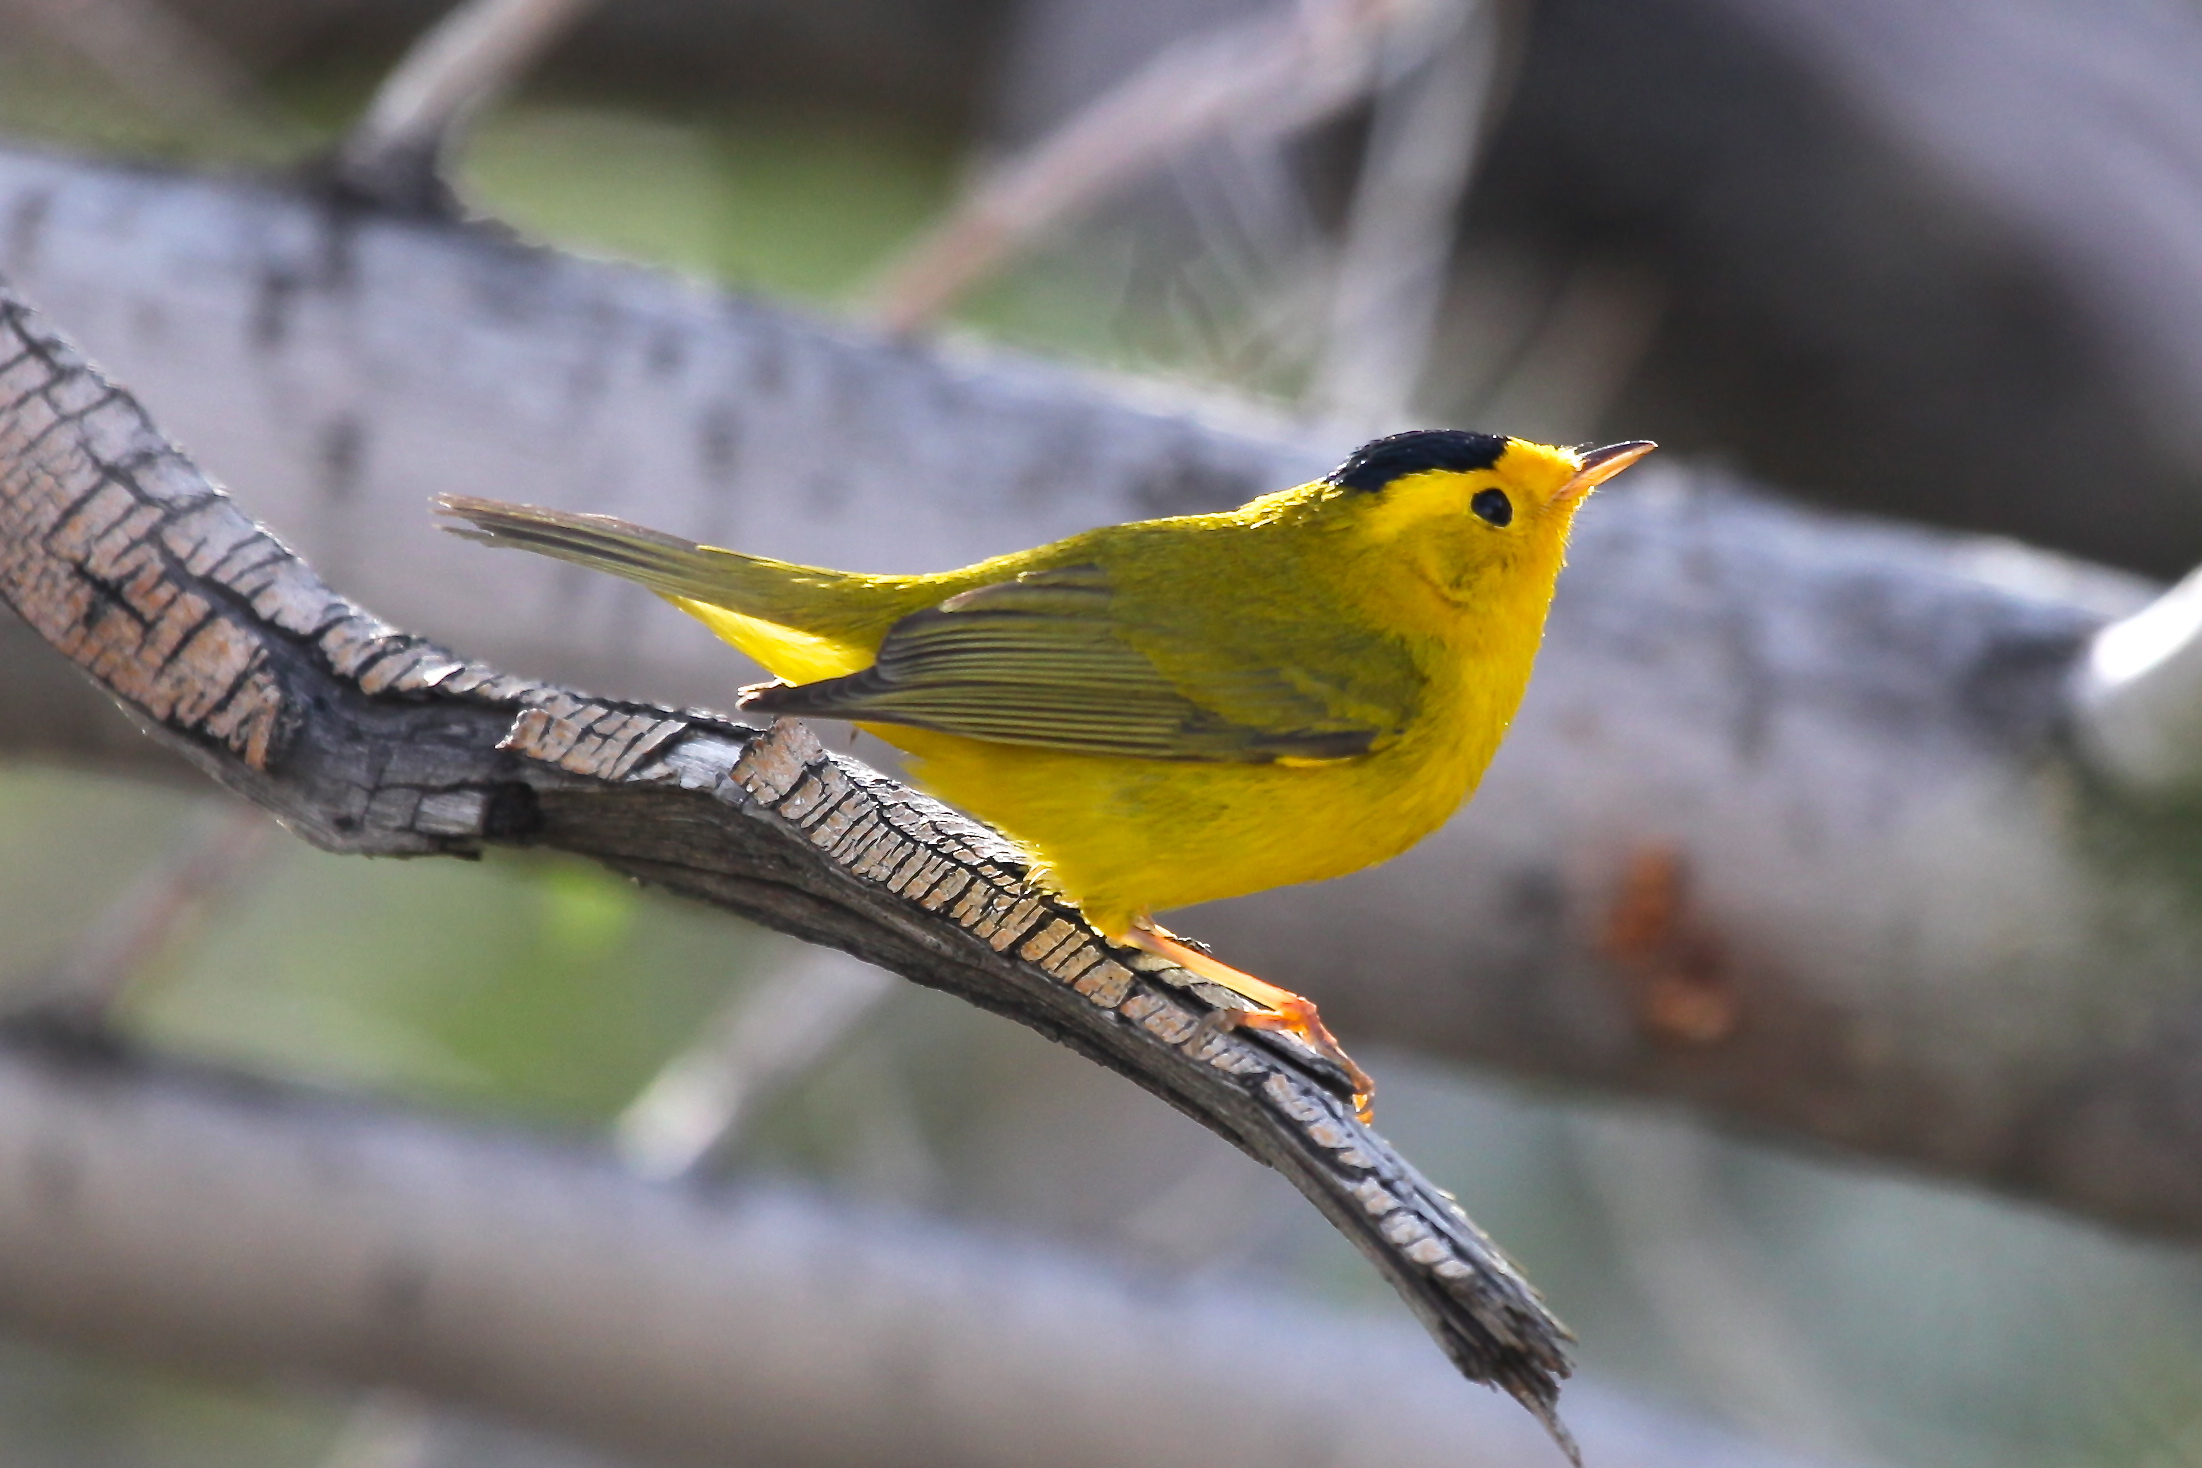 A Wilson's warbler, a species of New World bird that breeds in the temperate zone but winters in Central America. It is one of the more than 2,500 bird species analyzed in a new University of Michigan study. Image credit: Dan Rabosky